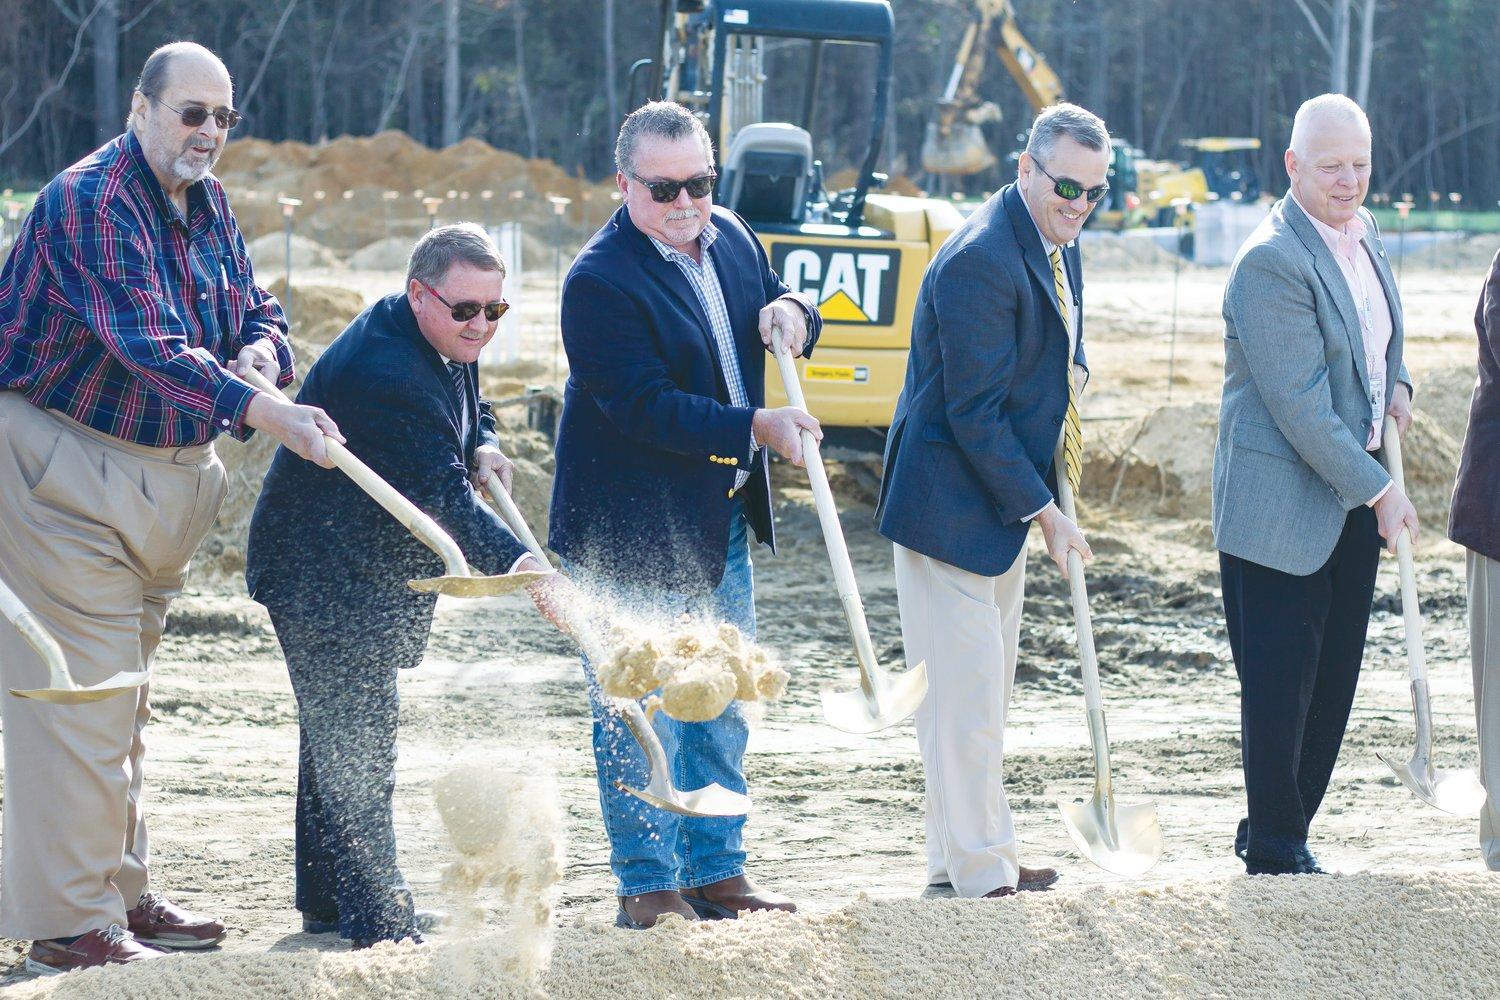 Members of the Wayne County Board of Education shovel dirt at the site of the new Southern Wayne High School gym at a recent ground-breaking ceremony. From left, Richard Pridgen, Ven Faulk, Don West, Wayne County Public Schools Superintendent Michael Dunsmore and Wayne County Manager Craig Honeycutt break ground.